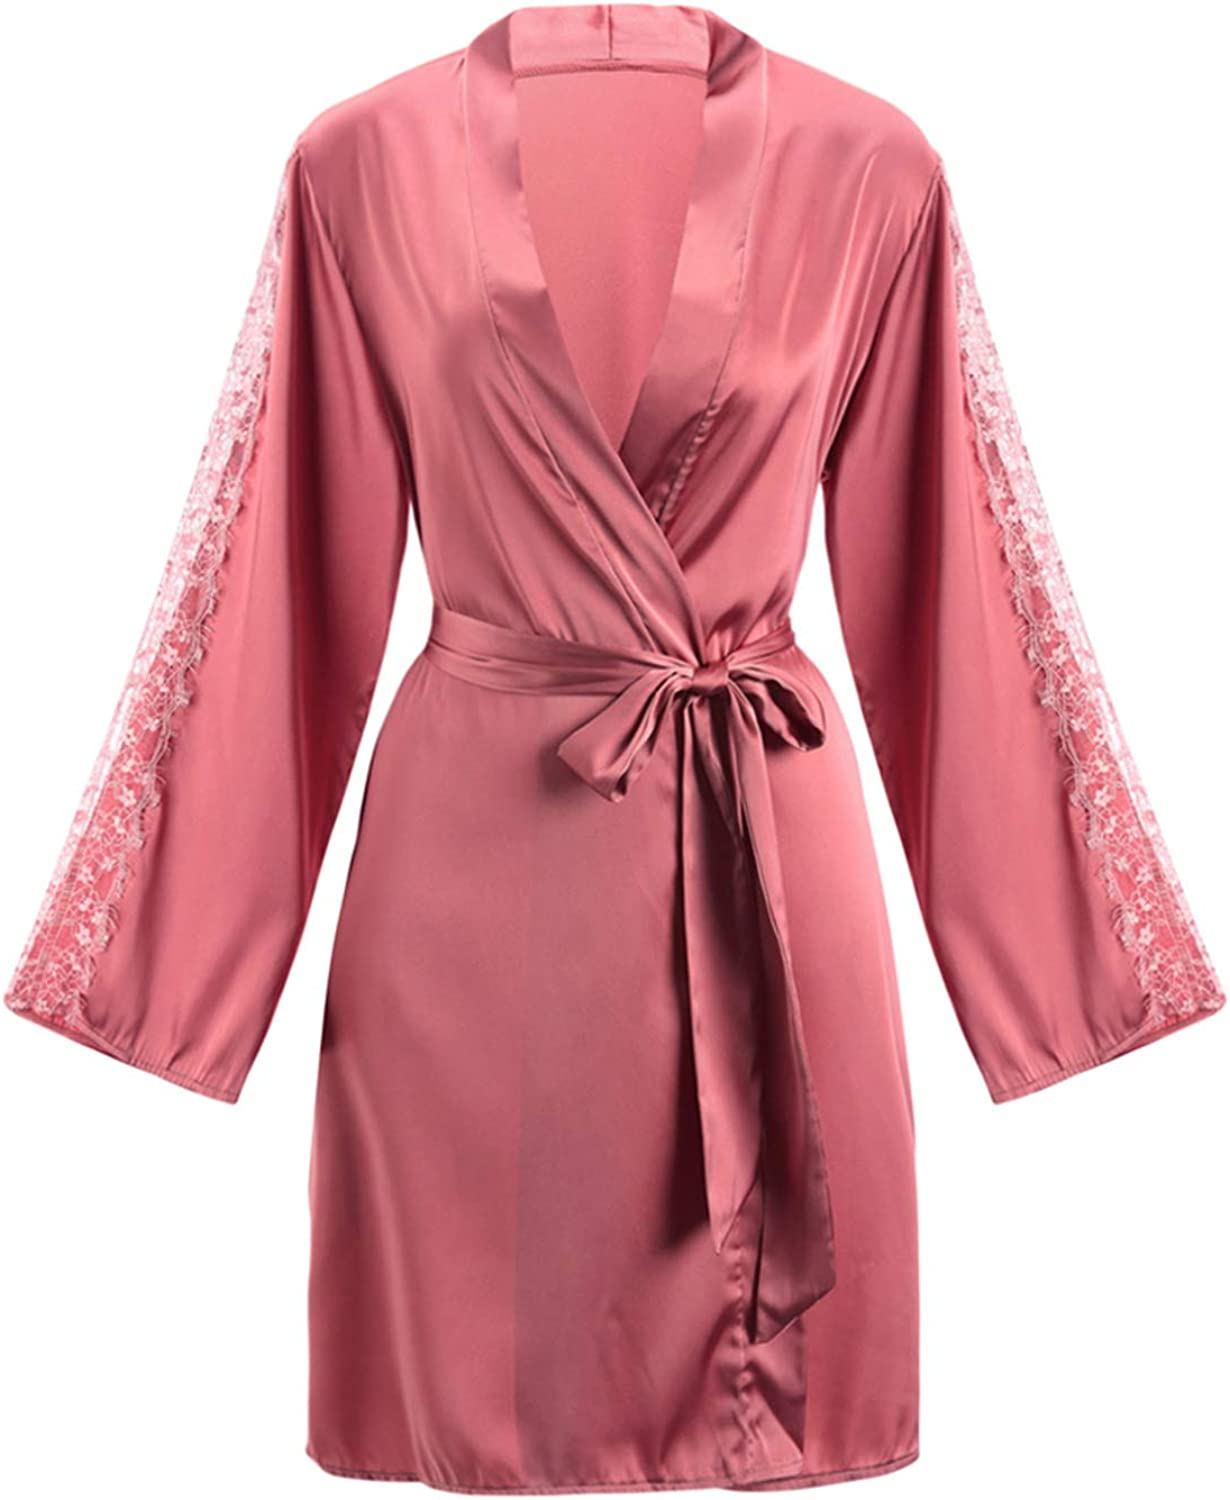 Pink Lace Kimono Dressing Gown, Sexy Pajamas Bathrobe with Belt, Long Sleeve VNeck Robes, One Size